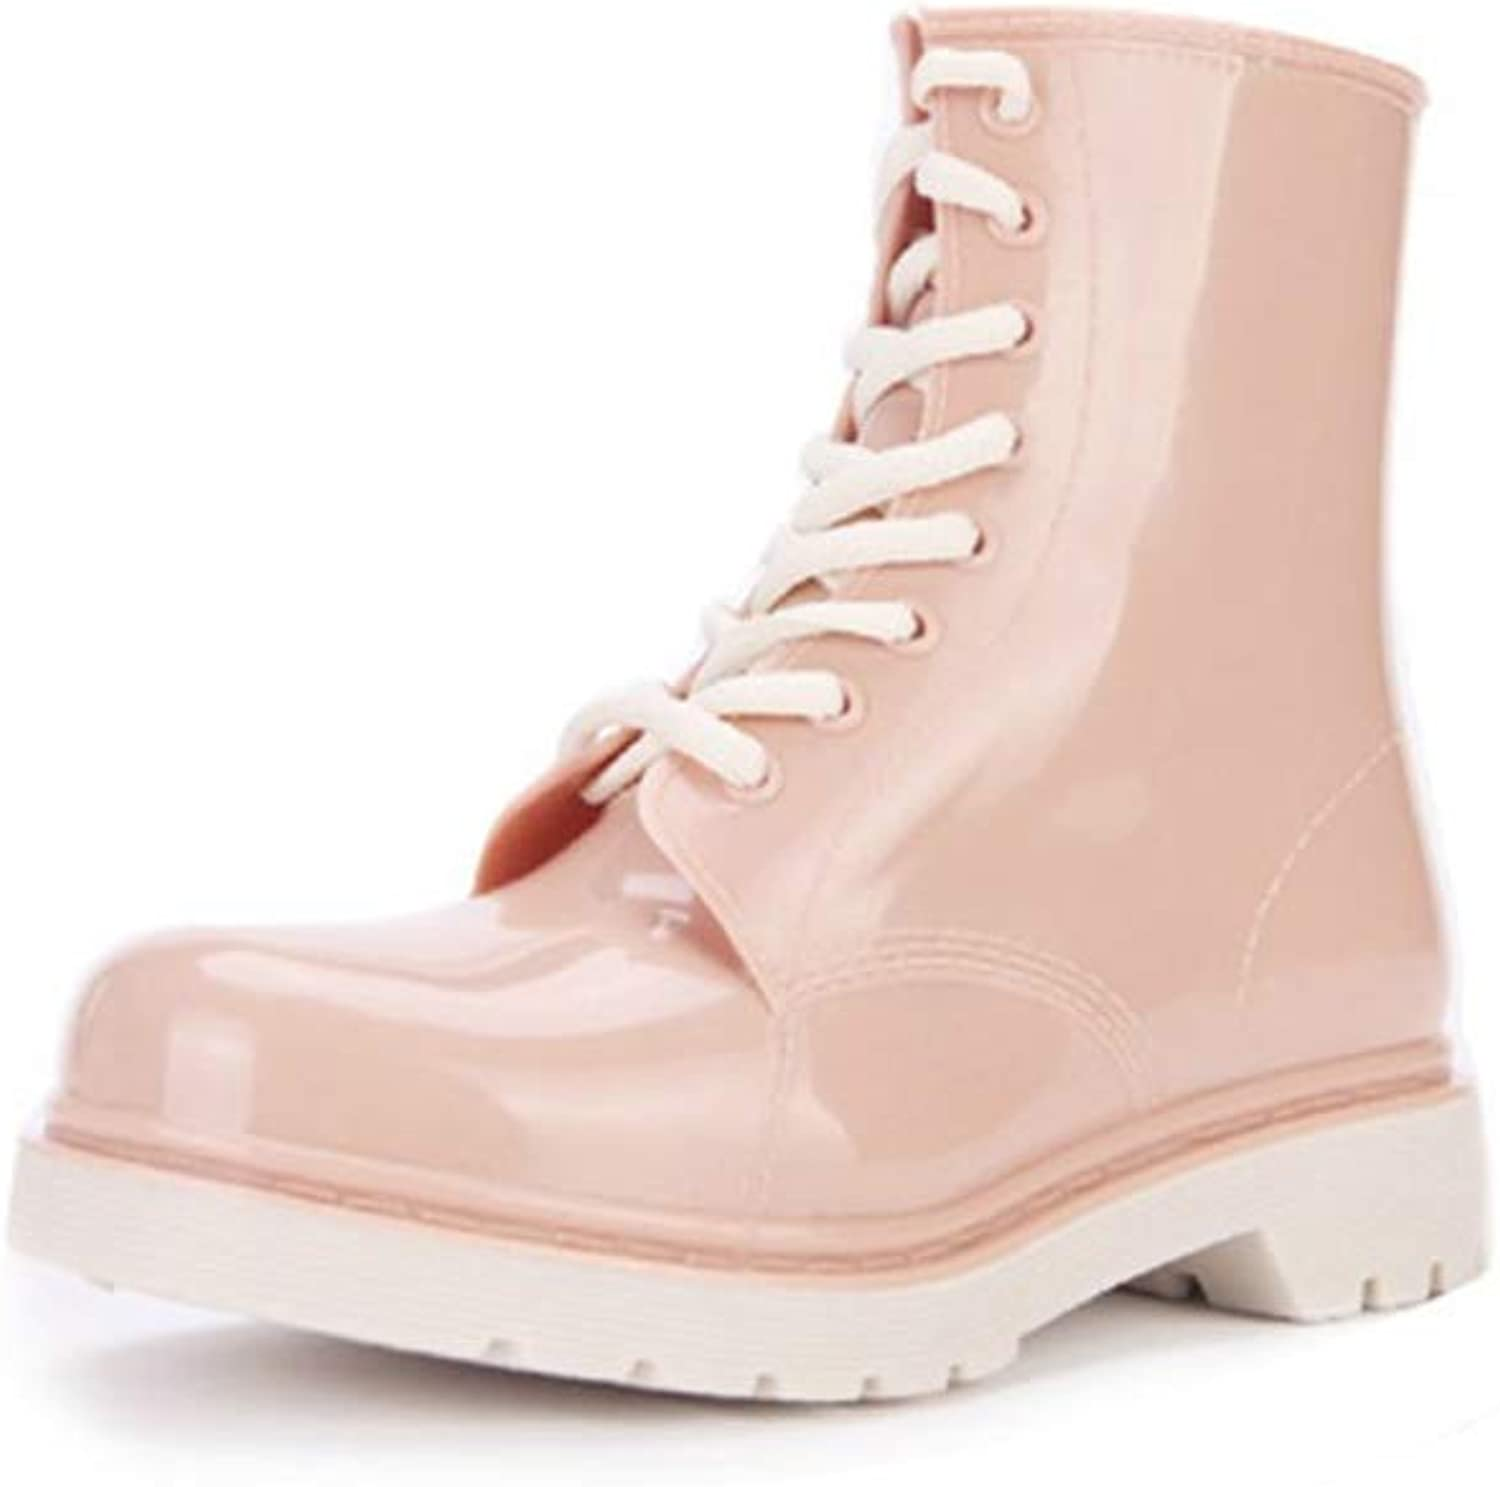 Fashion Rain Boots Non-Slip Boots Adult Water shoes Student Rubber shoes Martin The Lacing Design Rain Boots Women